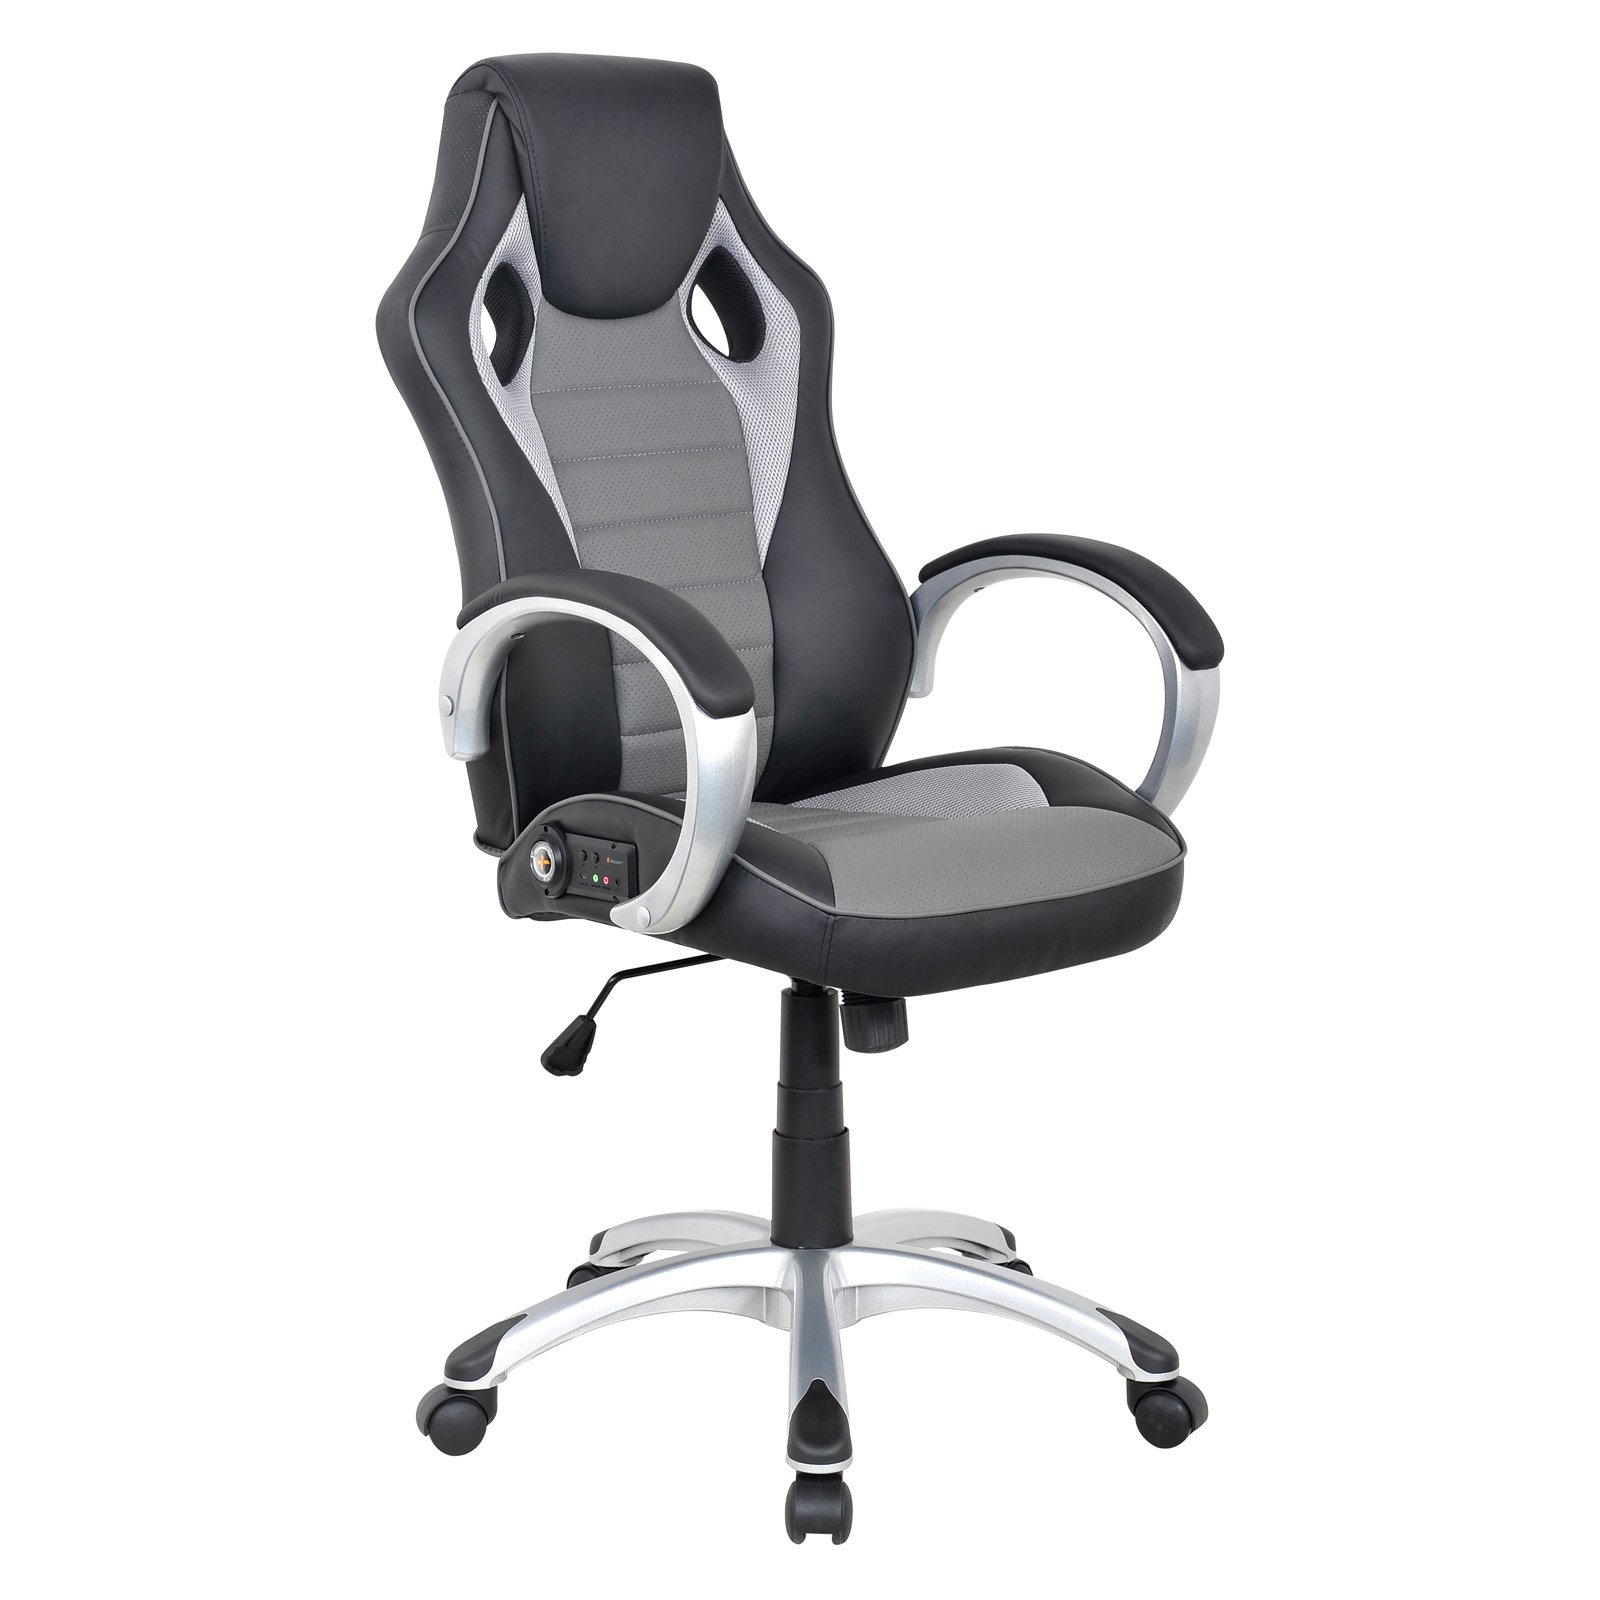 Game Chairs With Speakers Gaming Chair With Speakers Arms Ergonomic Rolling Office